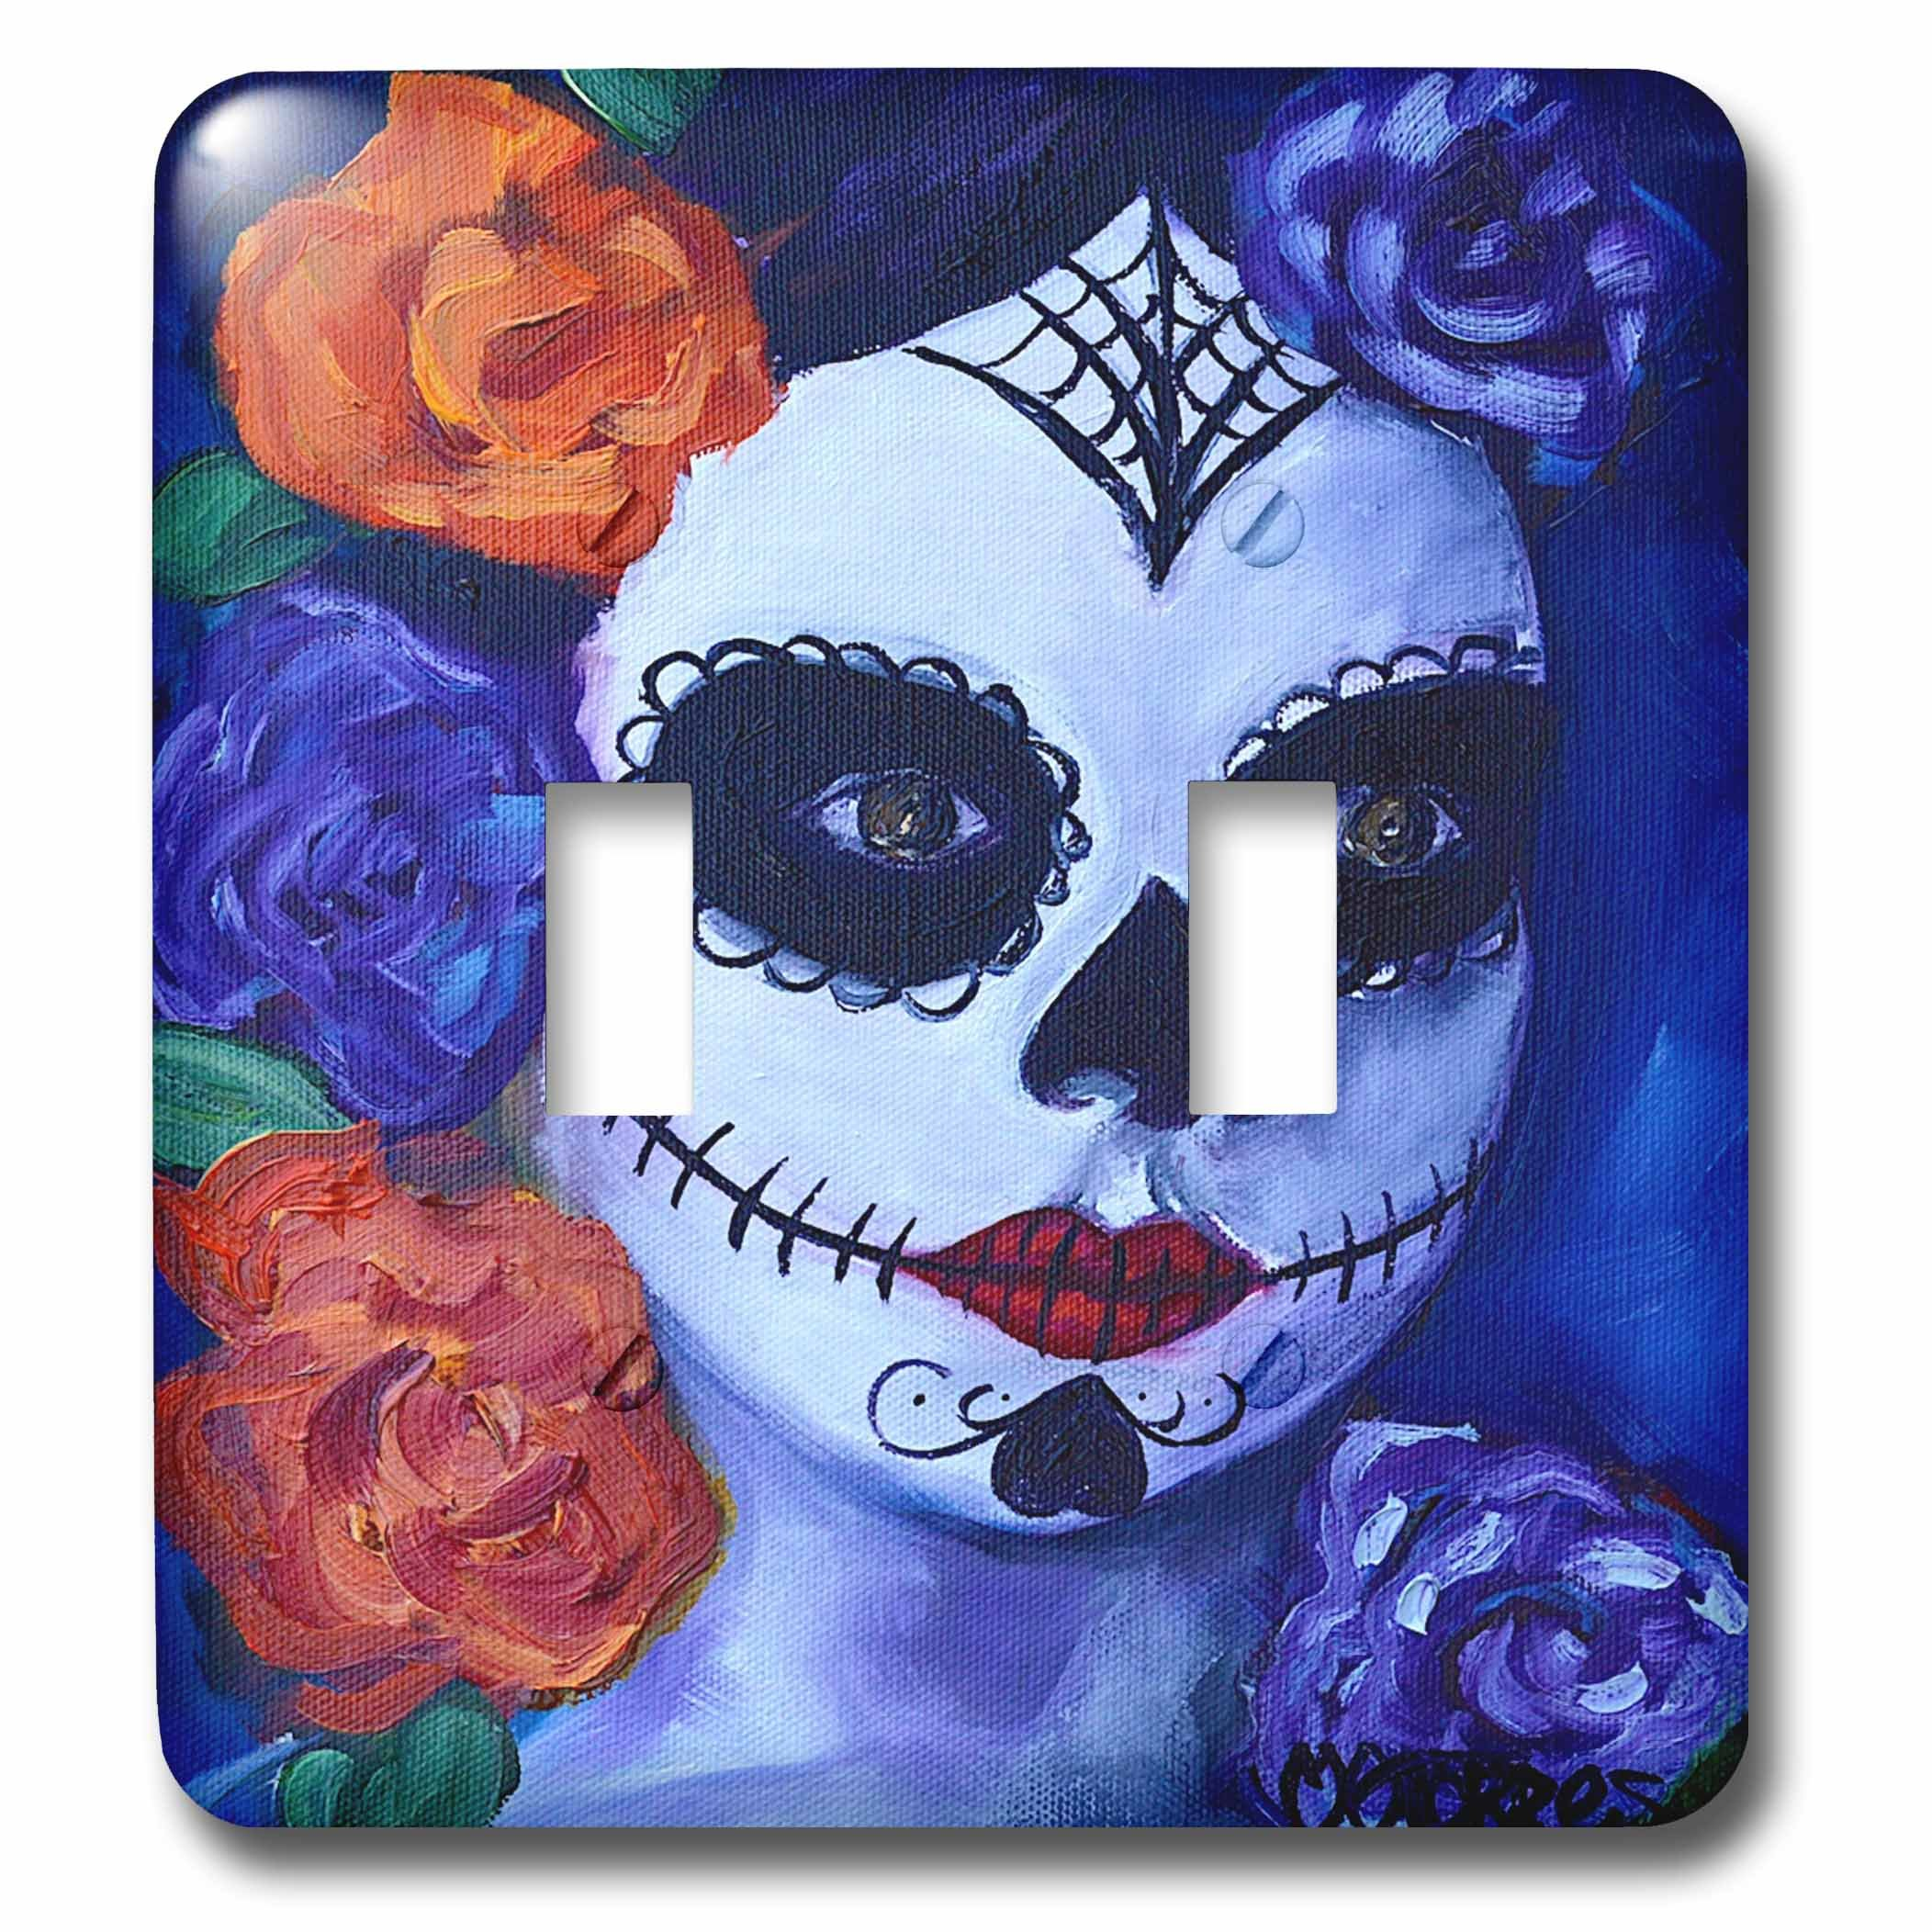 3dRose Melissa A. Torres Art Dia de Los Muertos - Image of Dia de los Muertos woman with roses - Light Switch Covers - double toggle switch (lsp_261563_2) by 3dRose